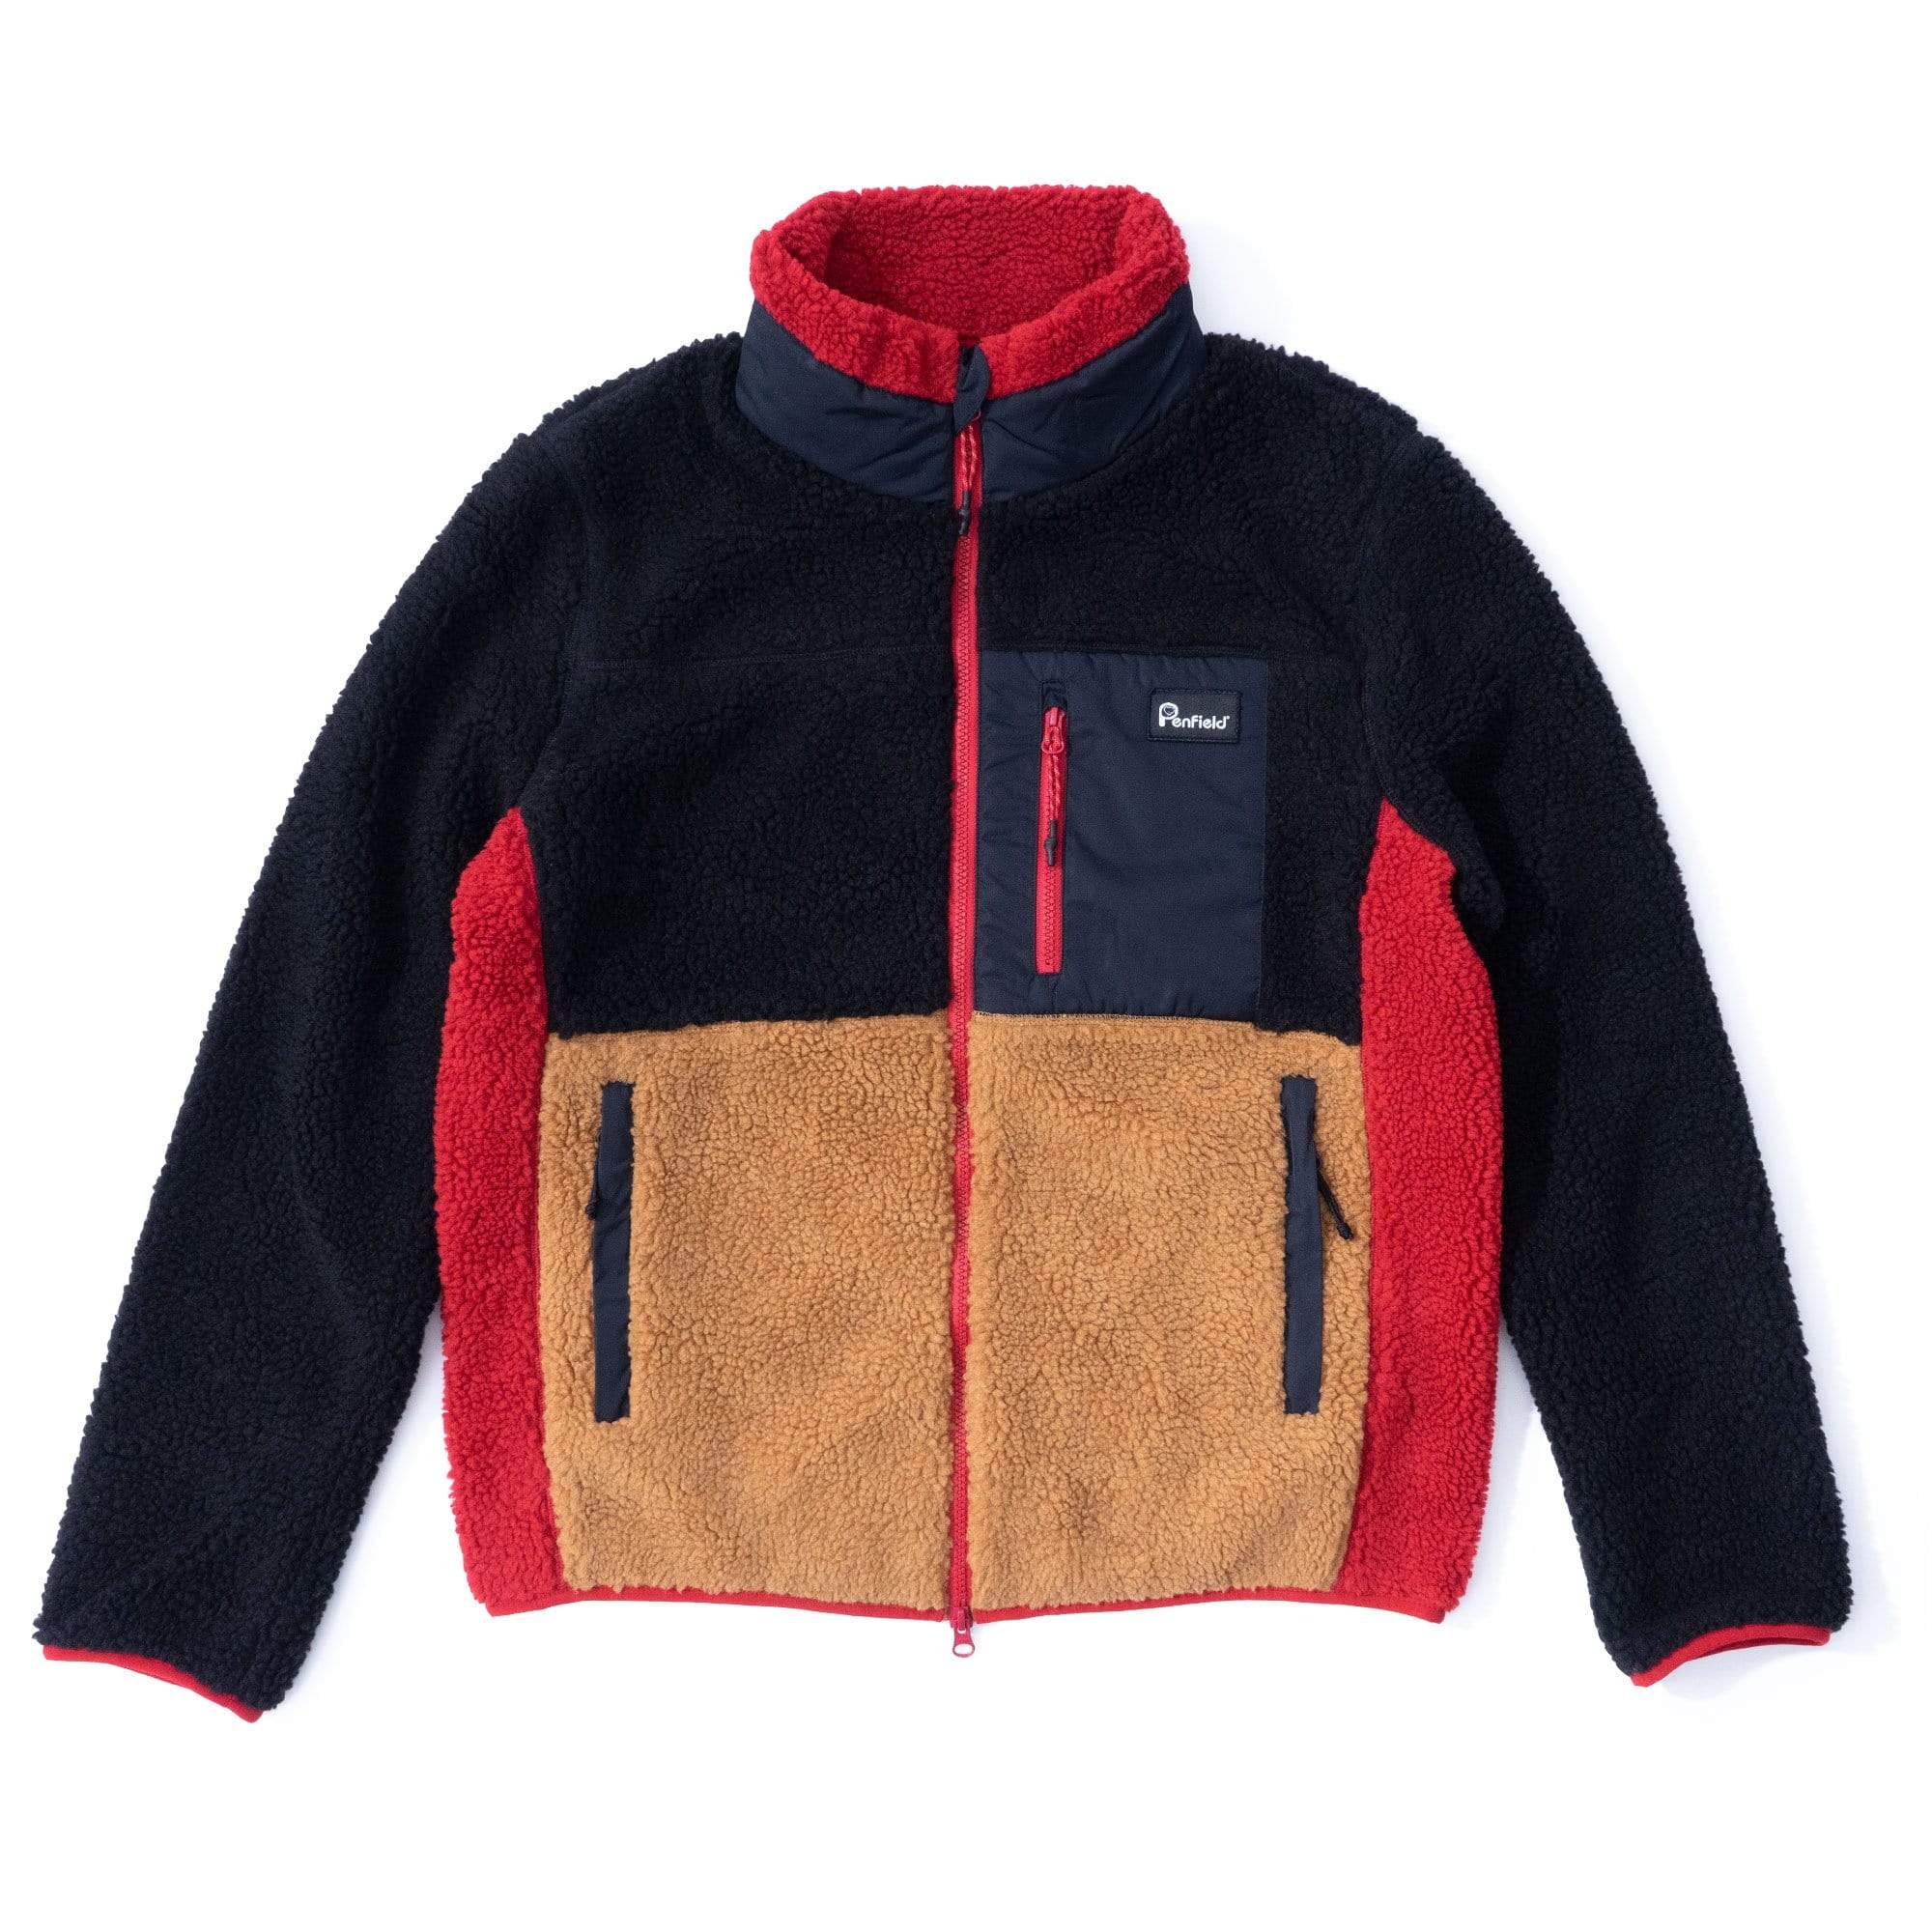 Penfield Jacken M MATTAWA Colourblock Fleece